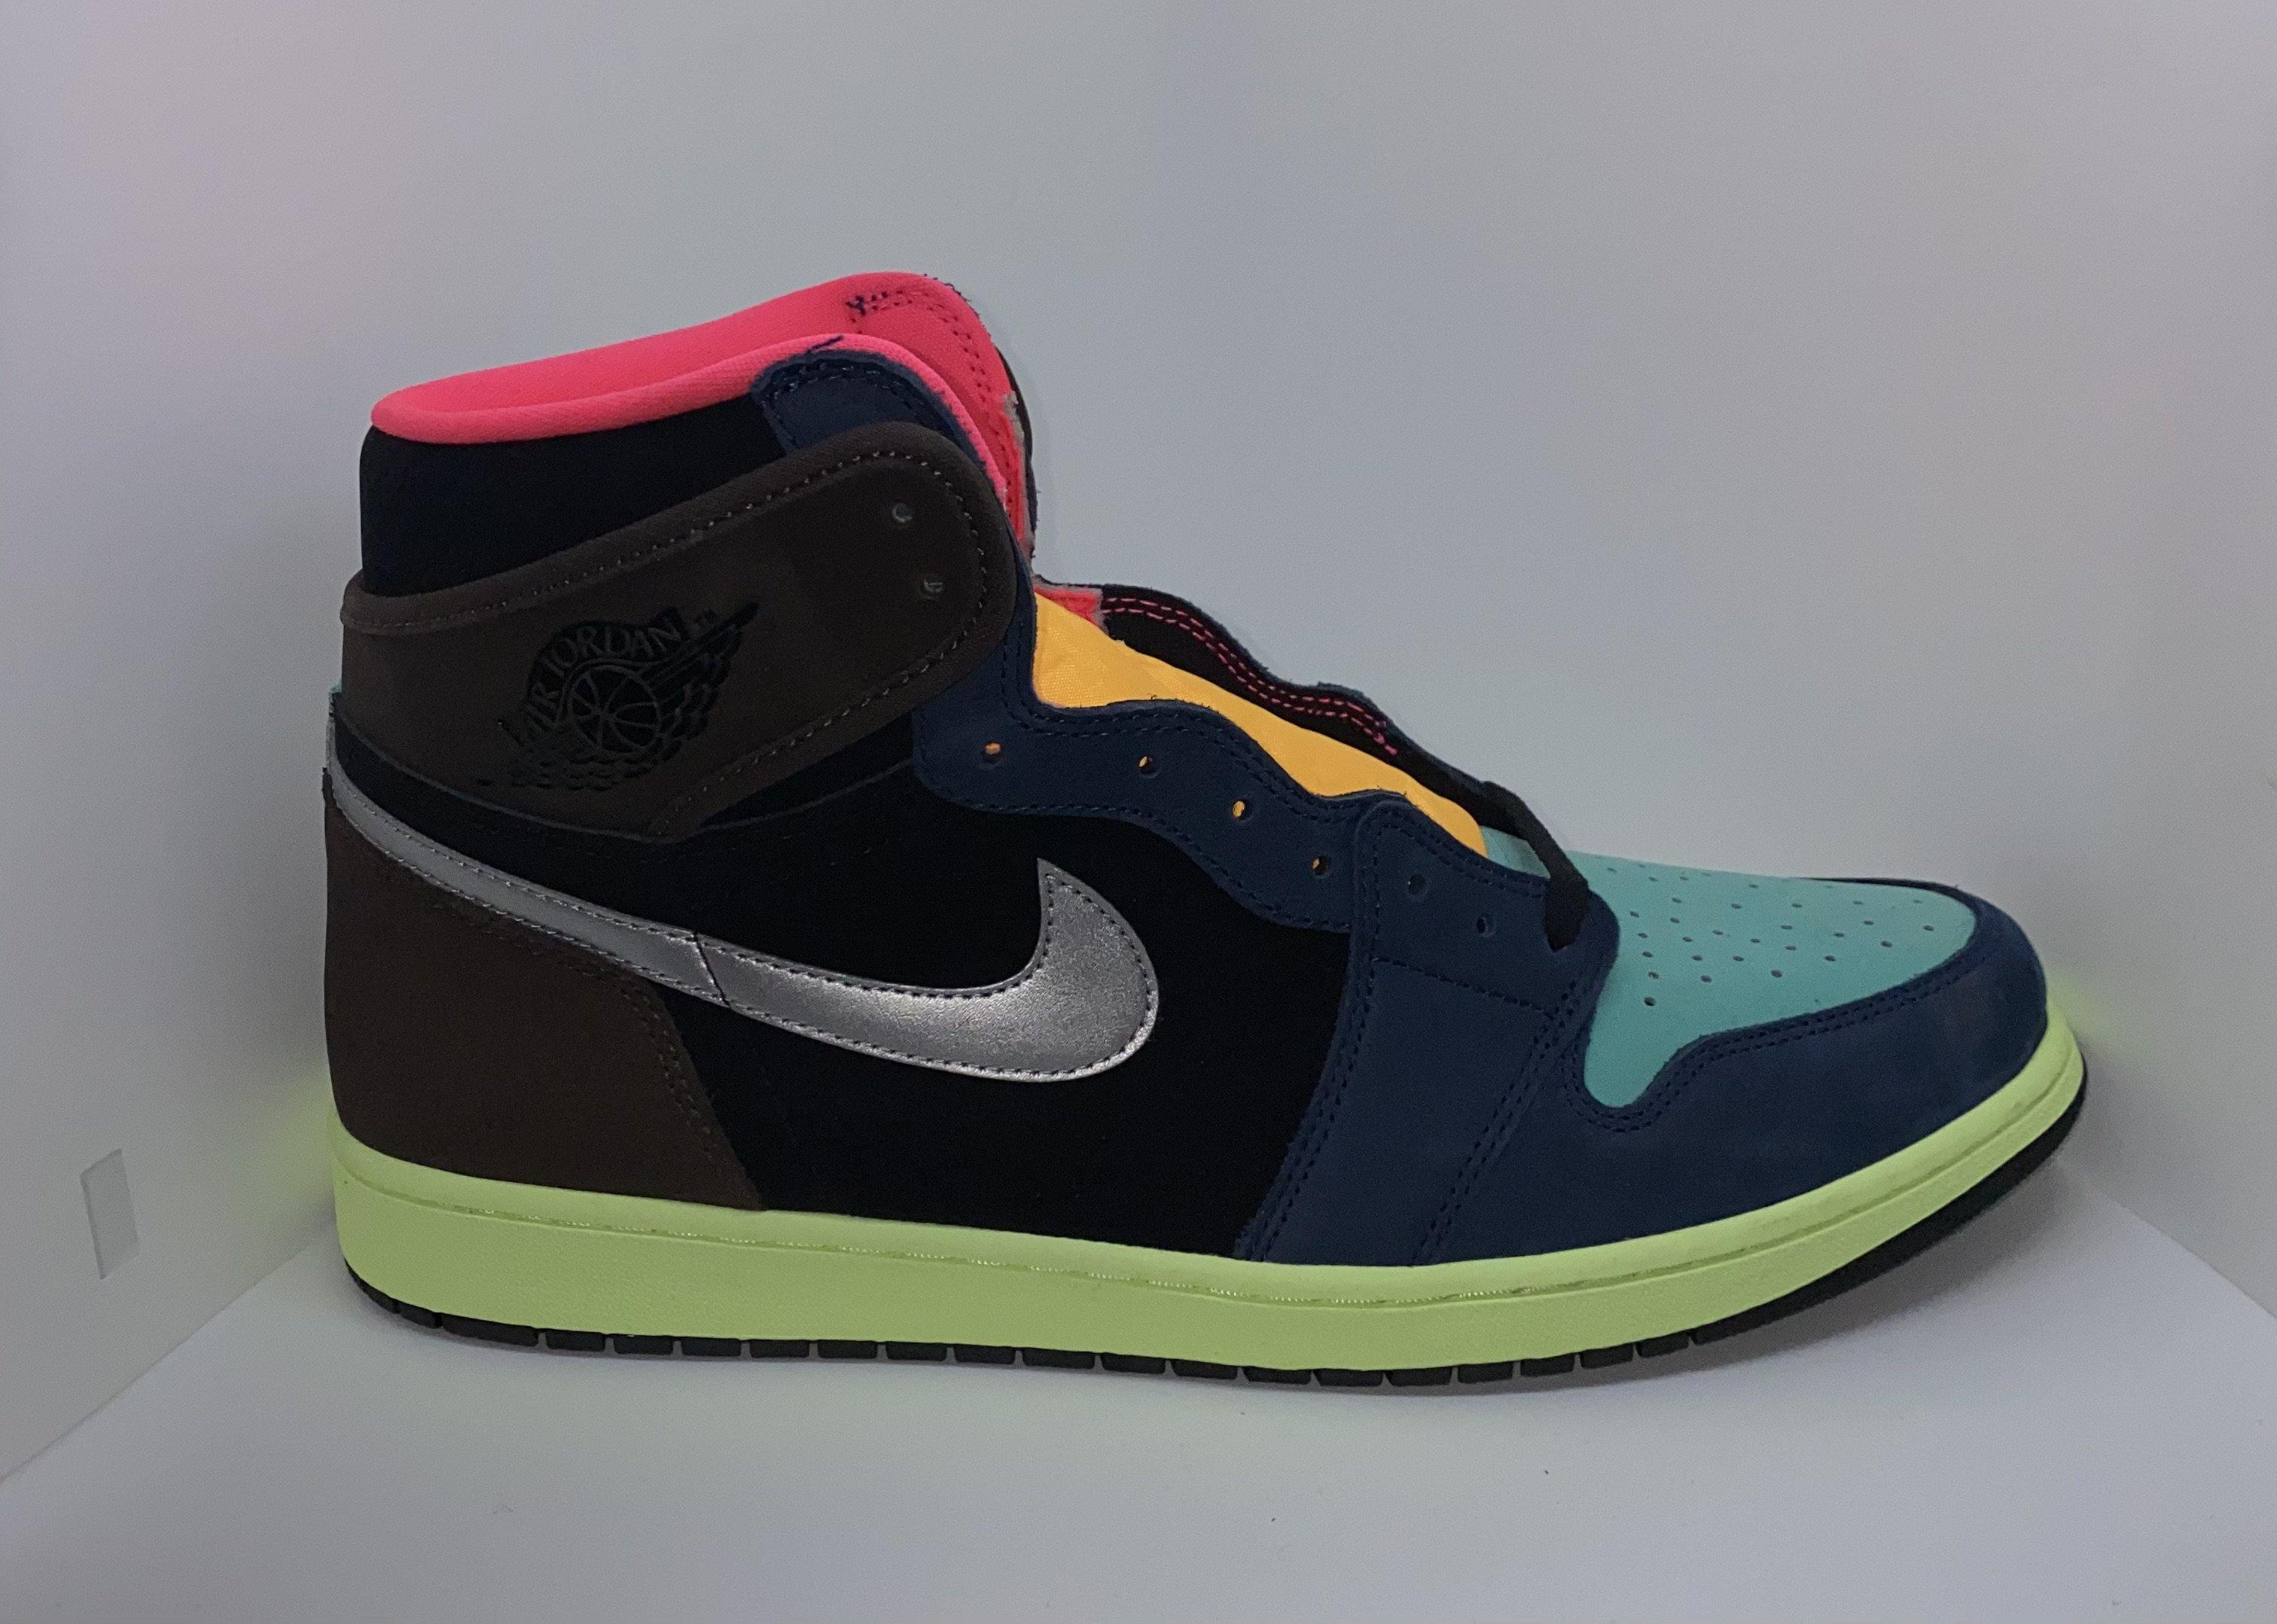 Air Jordan Retro 1s Biohack - Exclusive Shoes